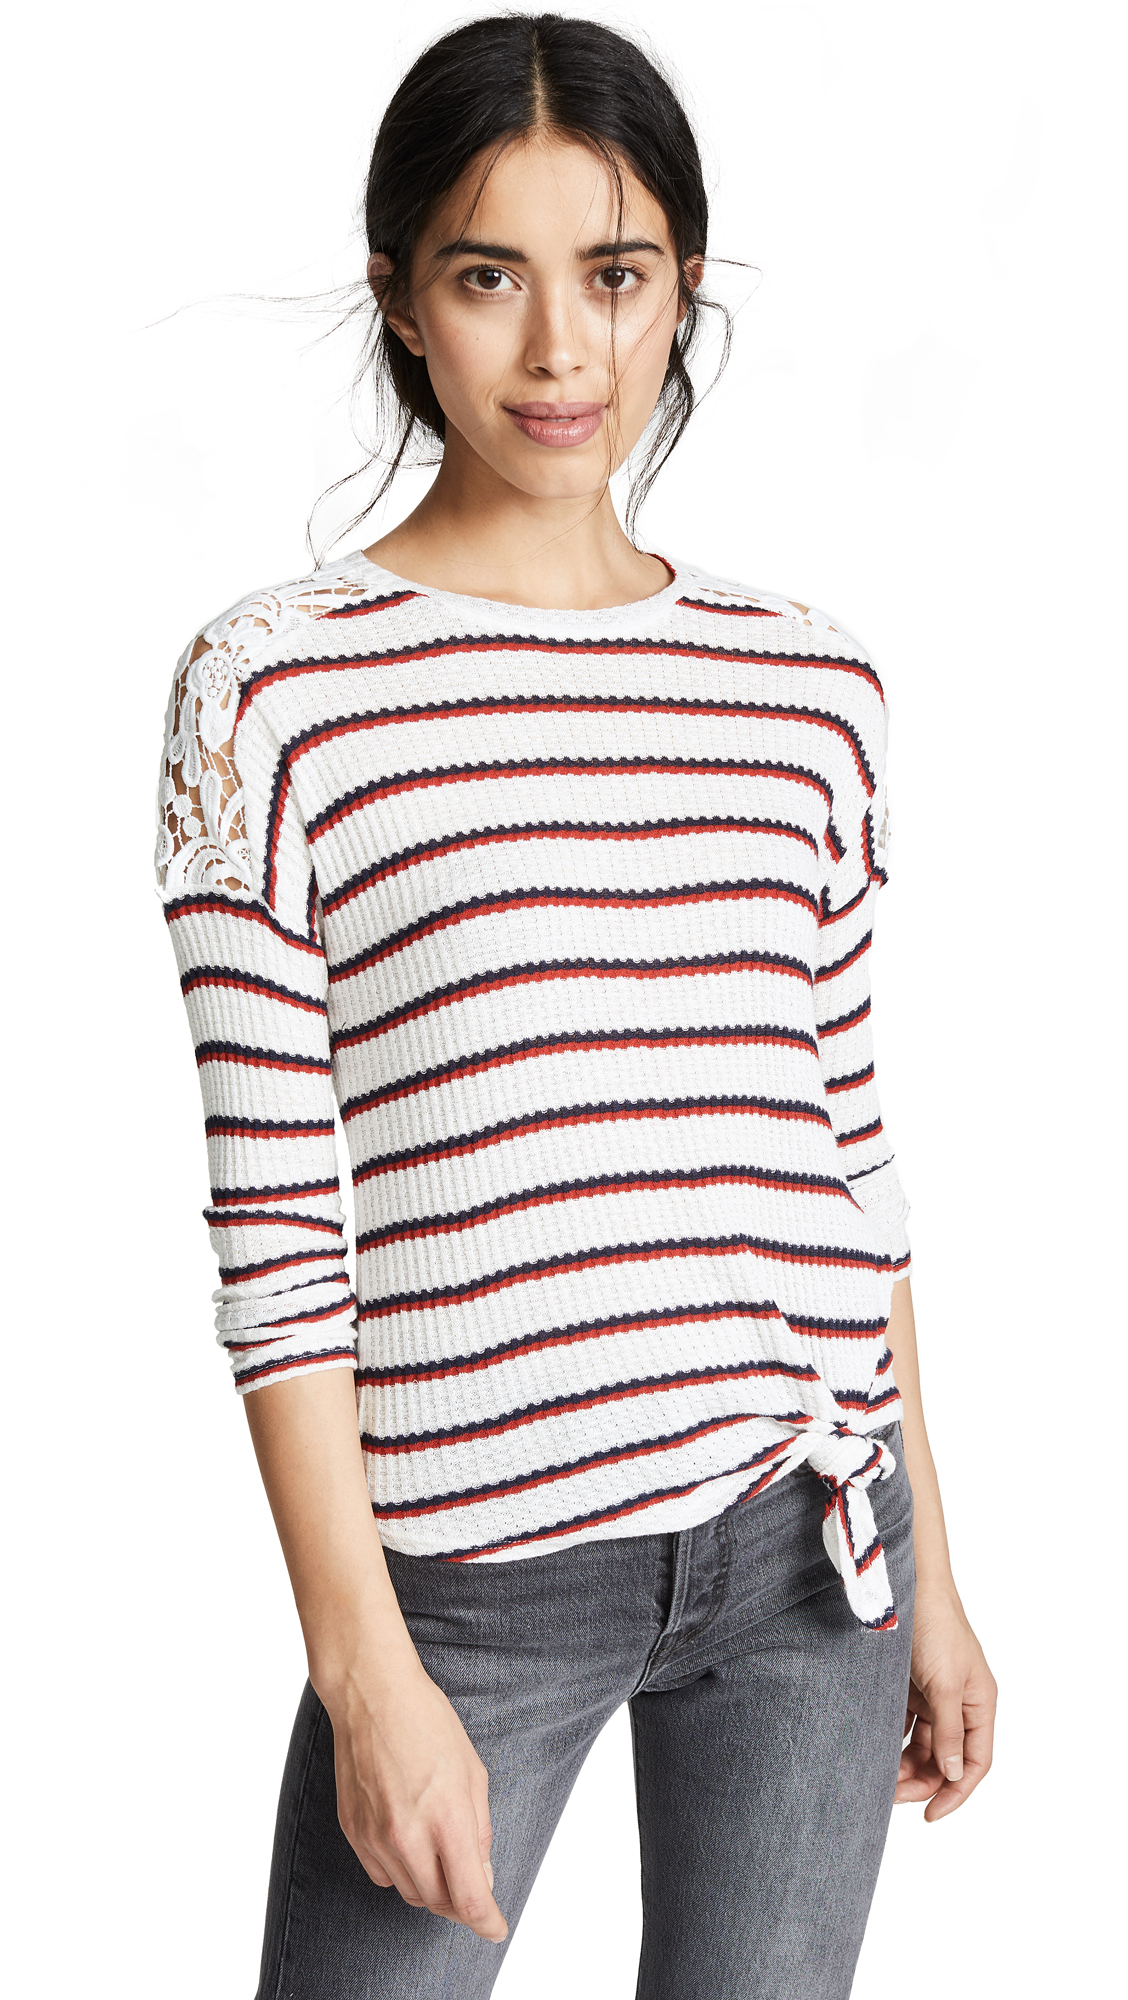 GENERATION LOVE Bleecker Striped Top With Lace Shoulder Detail in Multi Stripe